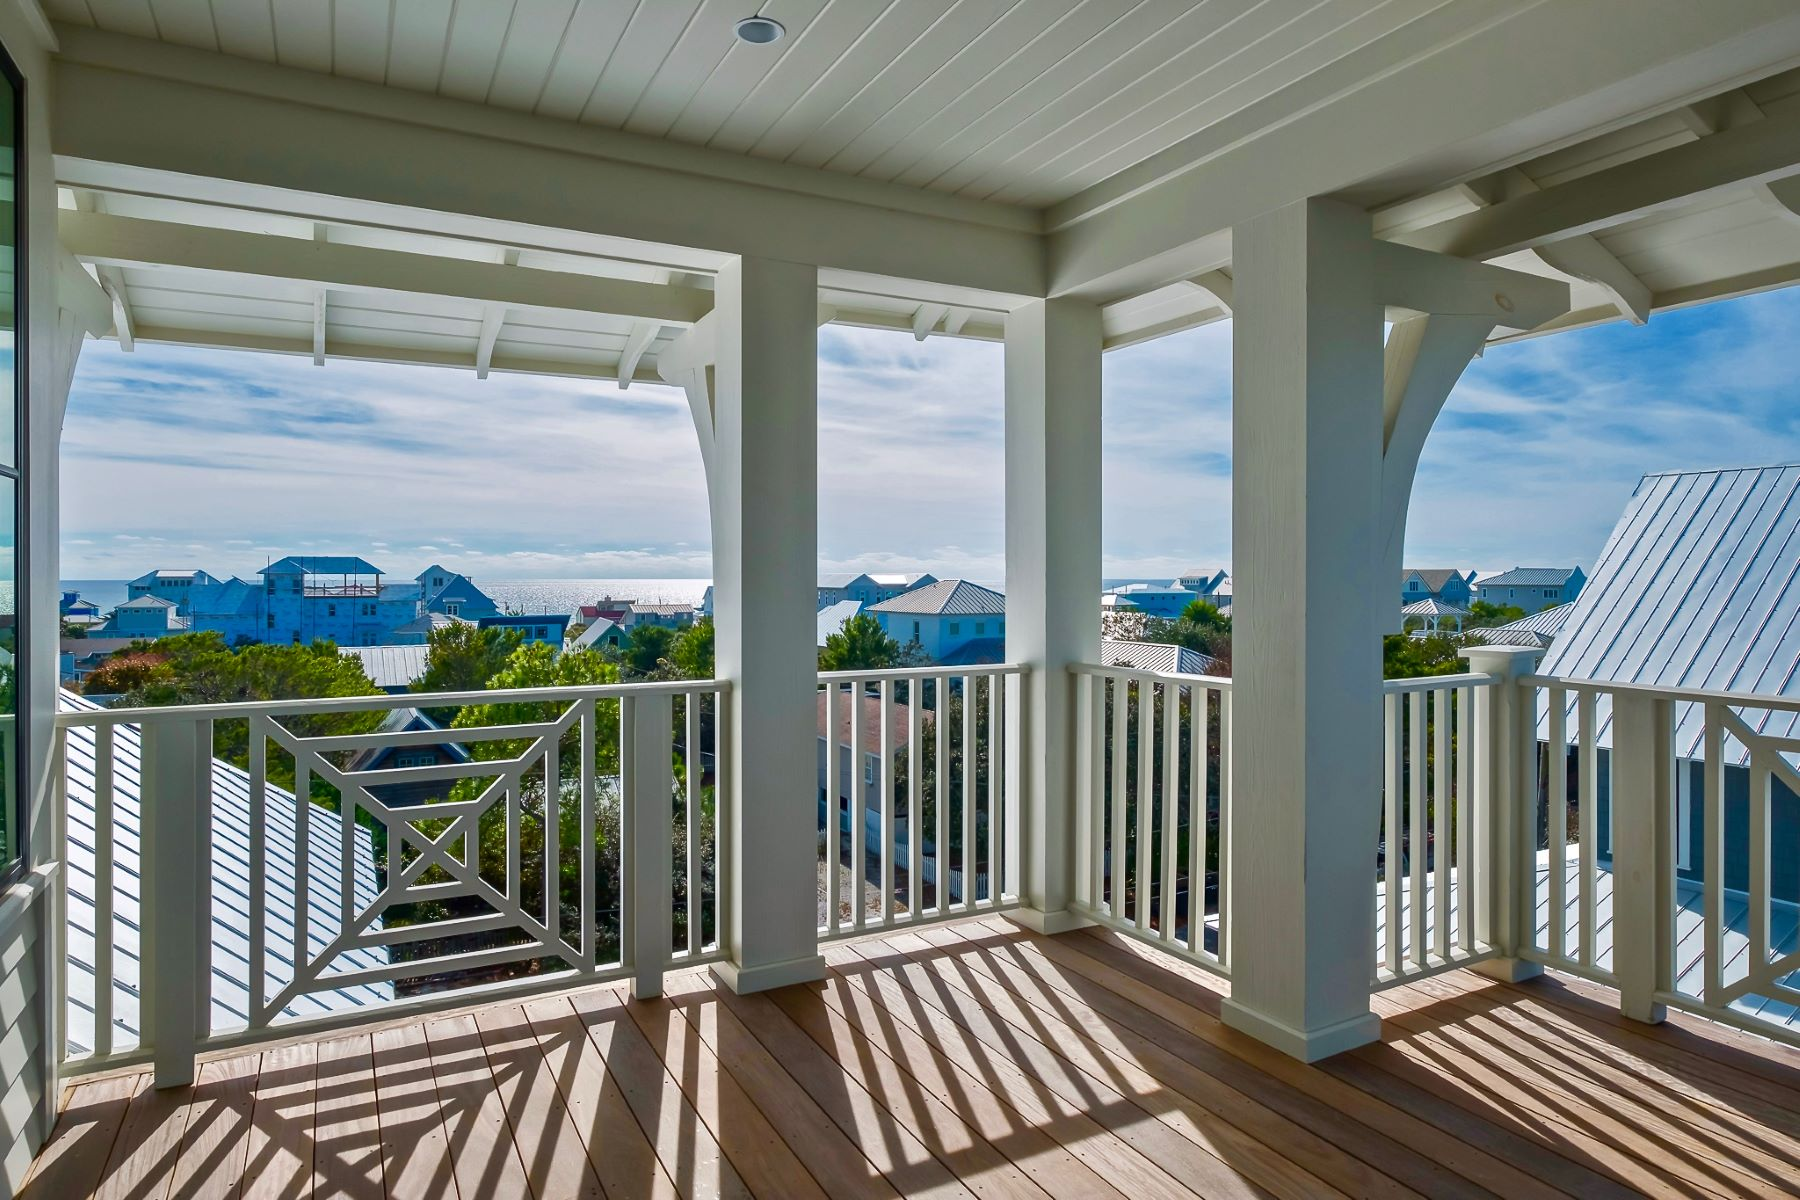 Single Family Homes for Sale at Meticulously Custom Designed Home with Gulf Views in Inlet Beach 212 Walton Rose Lane Inlet Beach, Florida 32461 United States